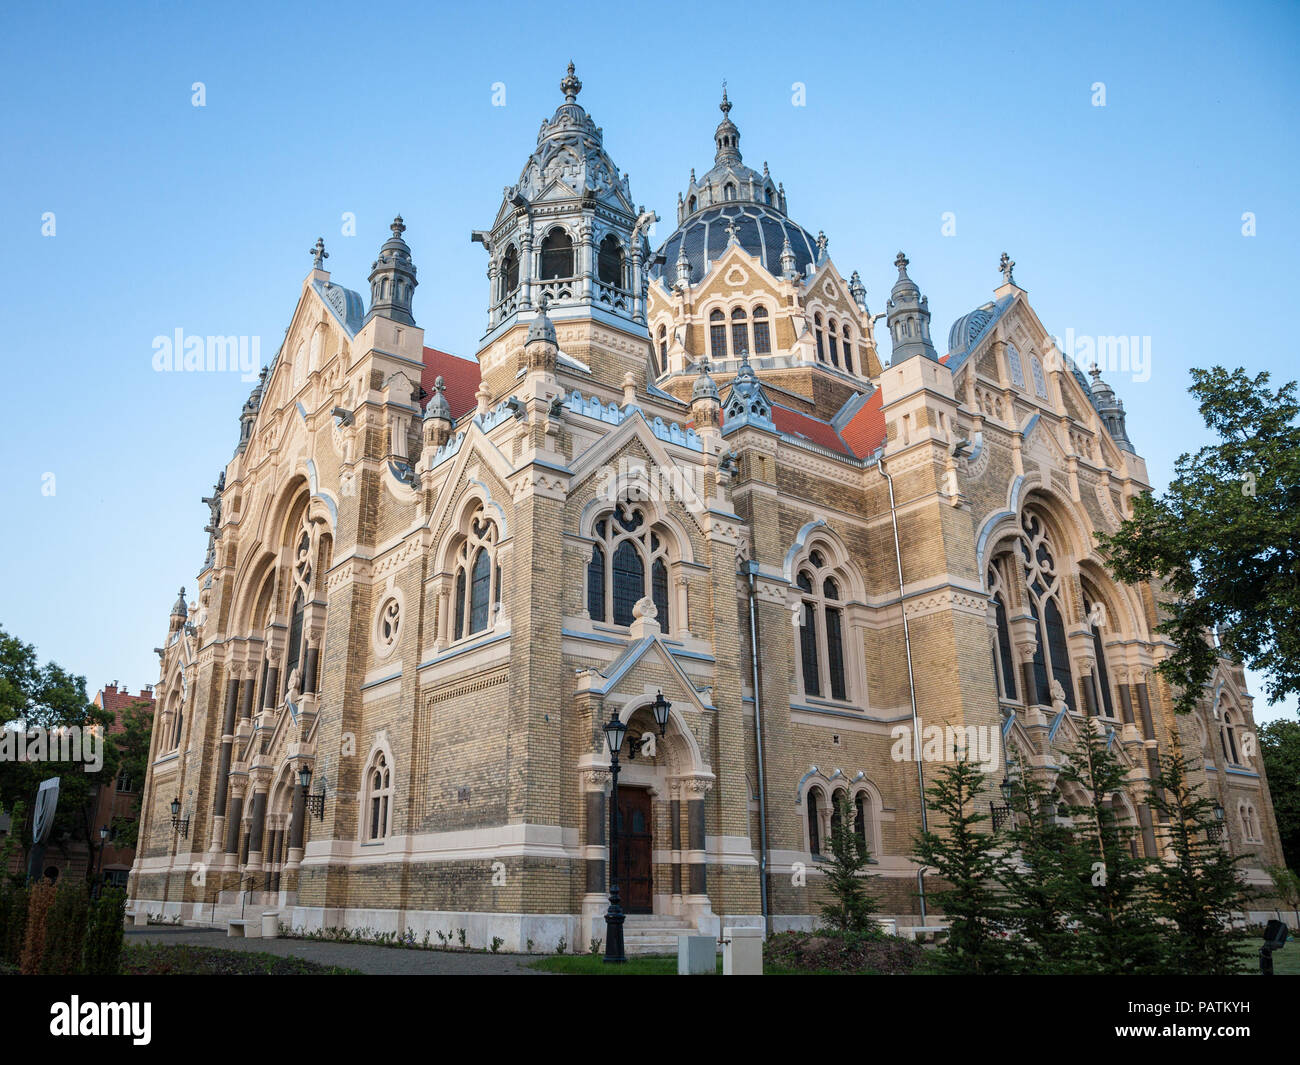 Szeged synagogue seen from the bottom during the end of the afternoon. Designed by Lipot Baumhorn, it is a symbol of the Central European judaism and  - Stock Image